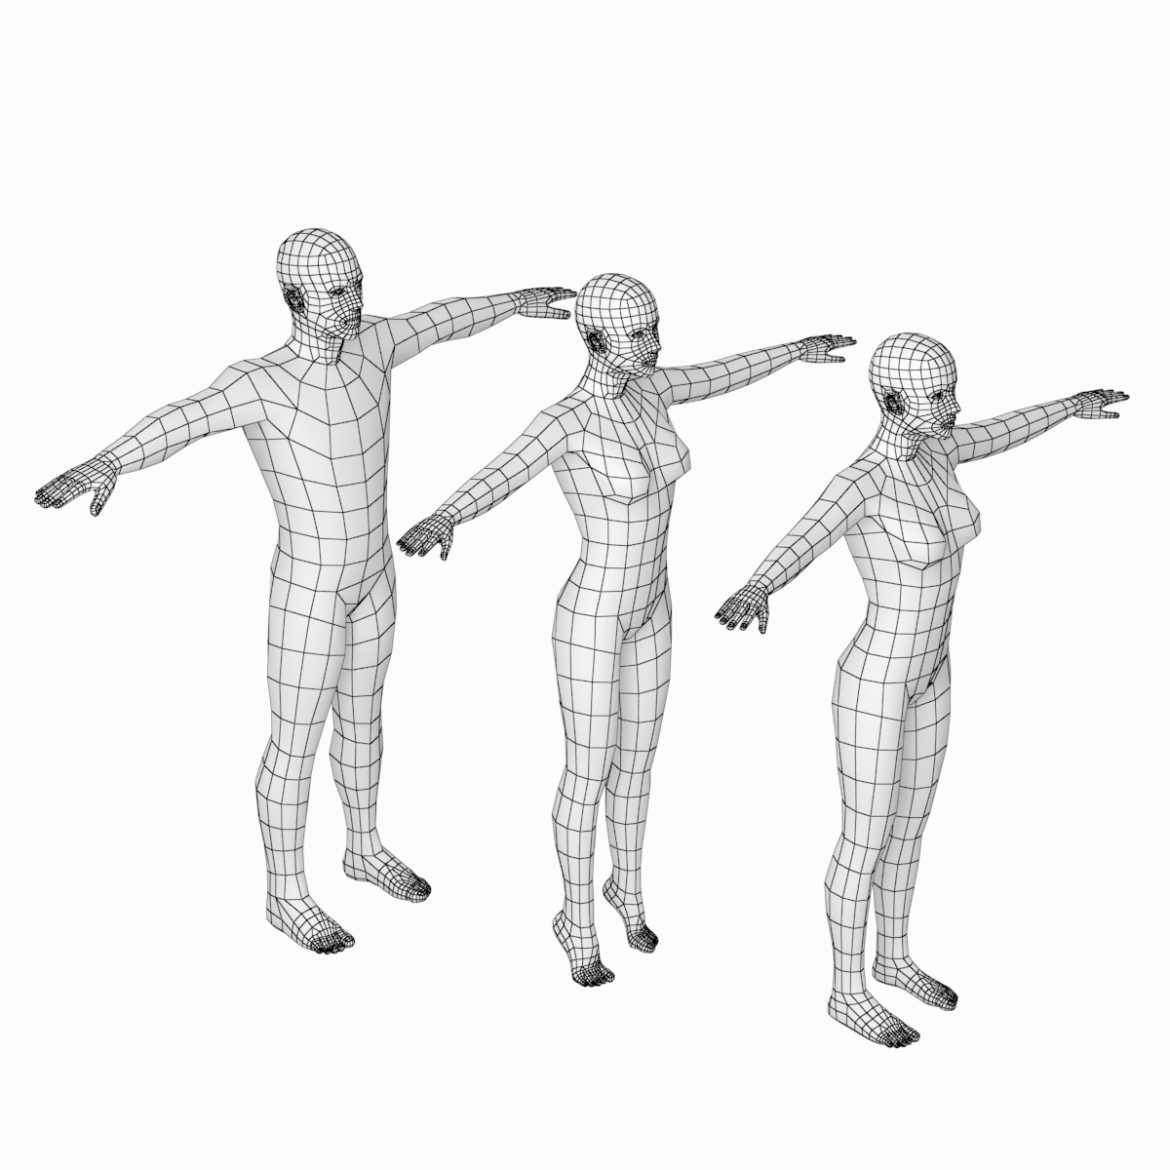 male and female base mesh in t-pose 3d model png stl obj ma mb max fbx dxf dwg dae c4d 3ds txt 305178